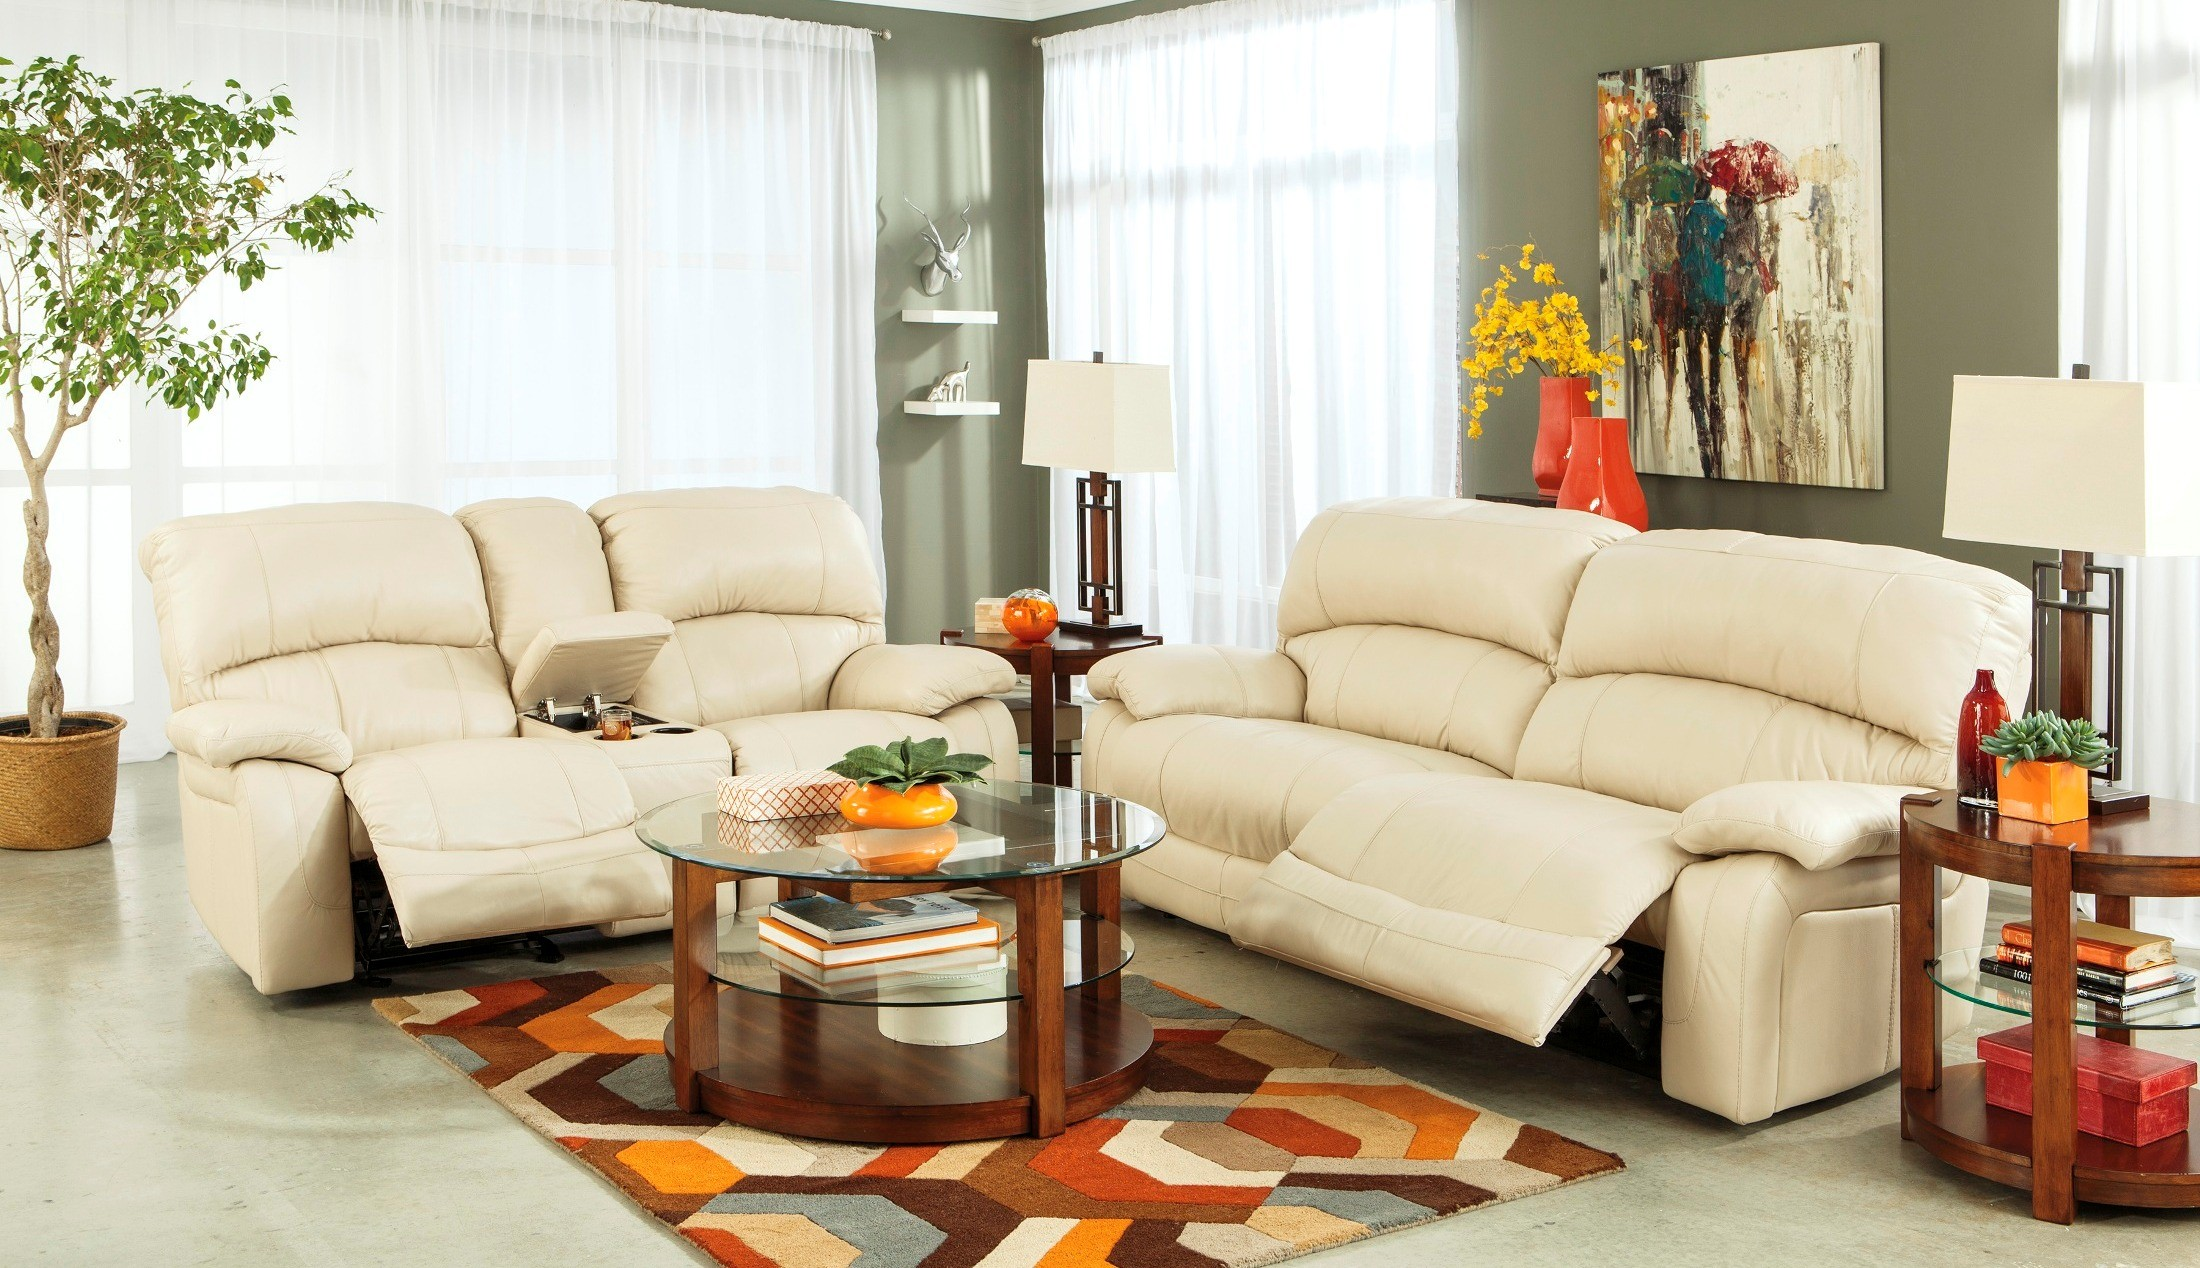 damacio cream reclining living room set from ashley u98201 81 43